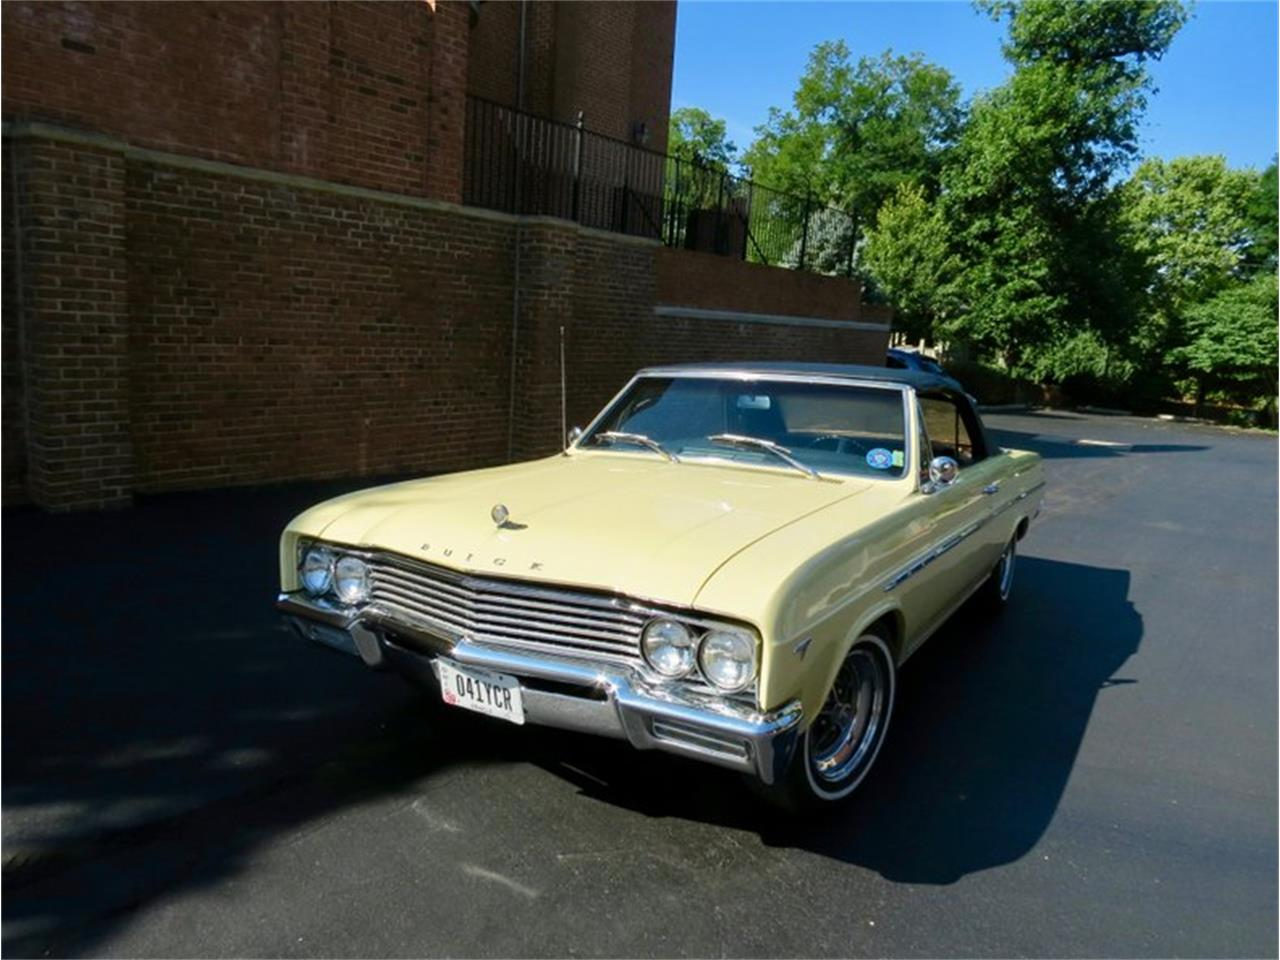 1965 Buick Skylark for sale in Dayton, OH – photo 48